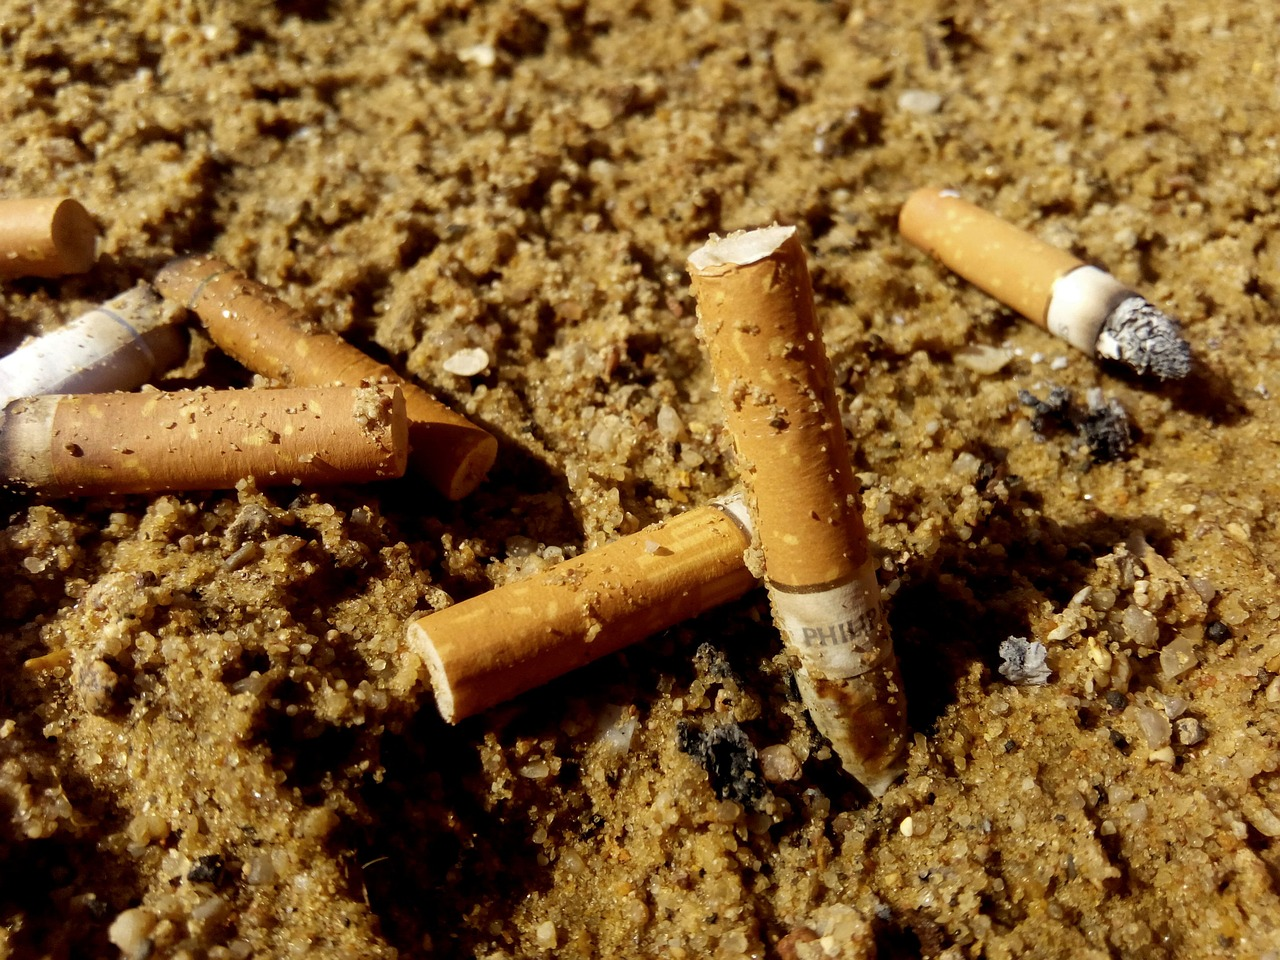 For proper smoking cessation services in Baton Rouge, choose CIS!